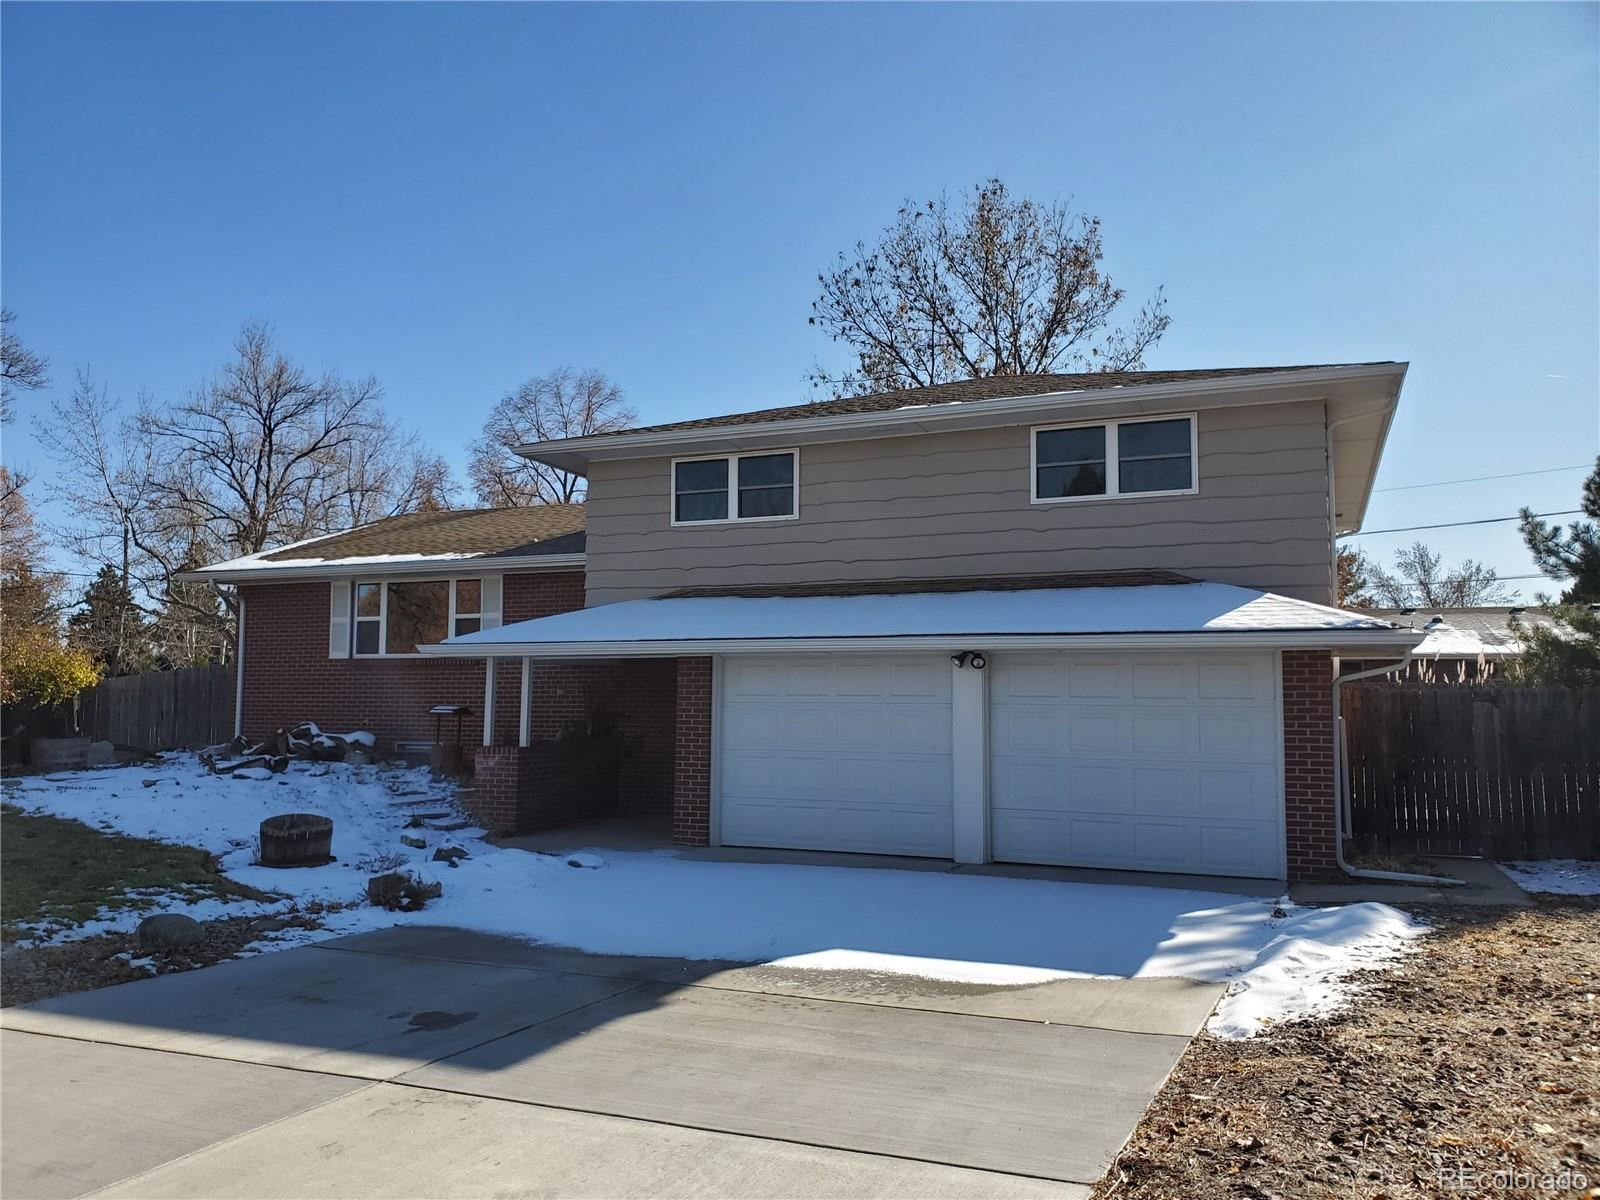 12082 W 36th Place, Wheat Ridge, CO 80033 - #: 4000756